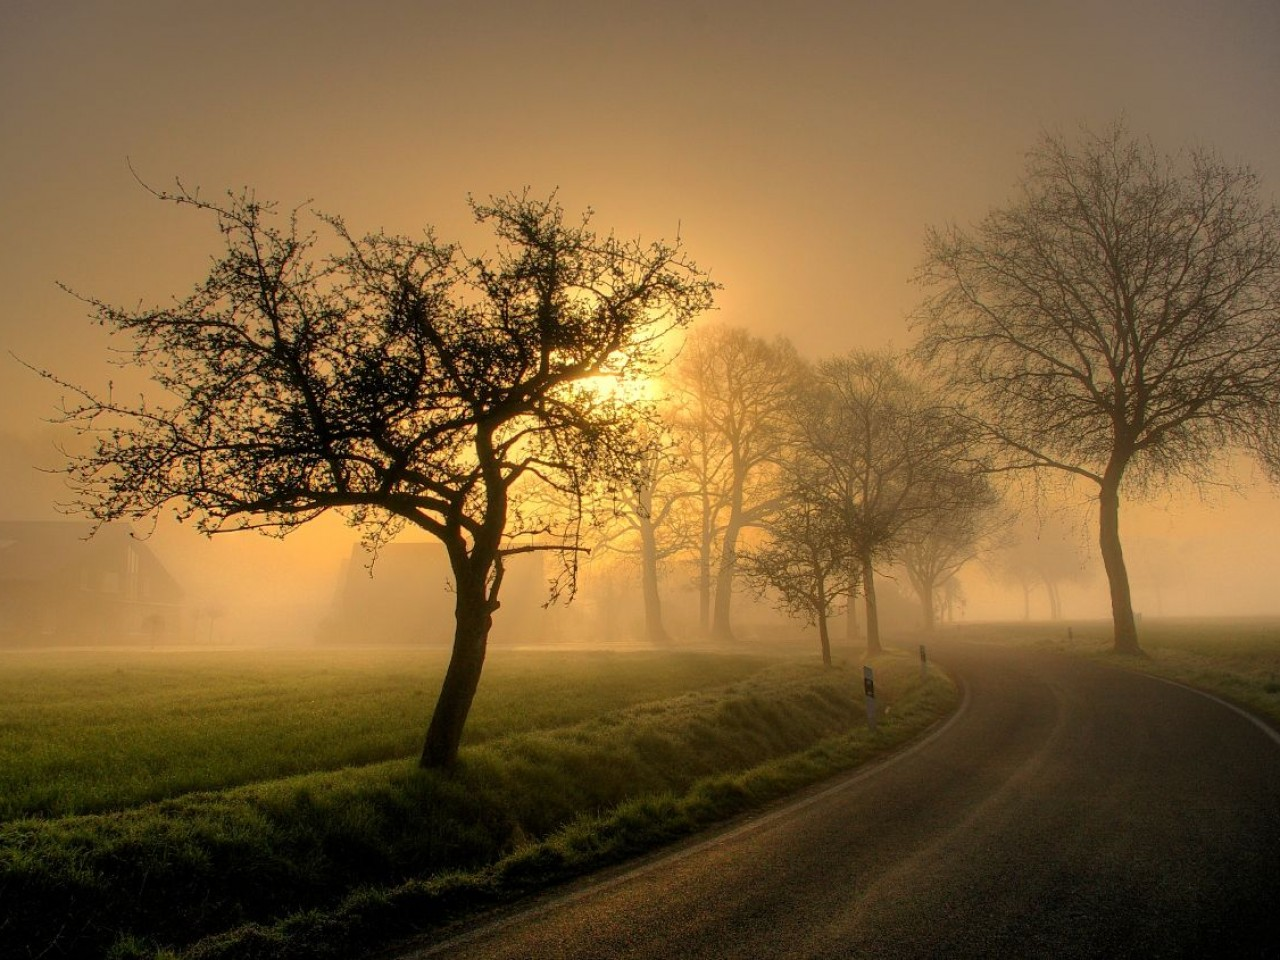 Sunrise Country Road Wallpaper Android